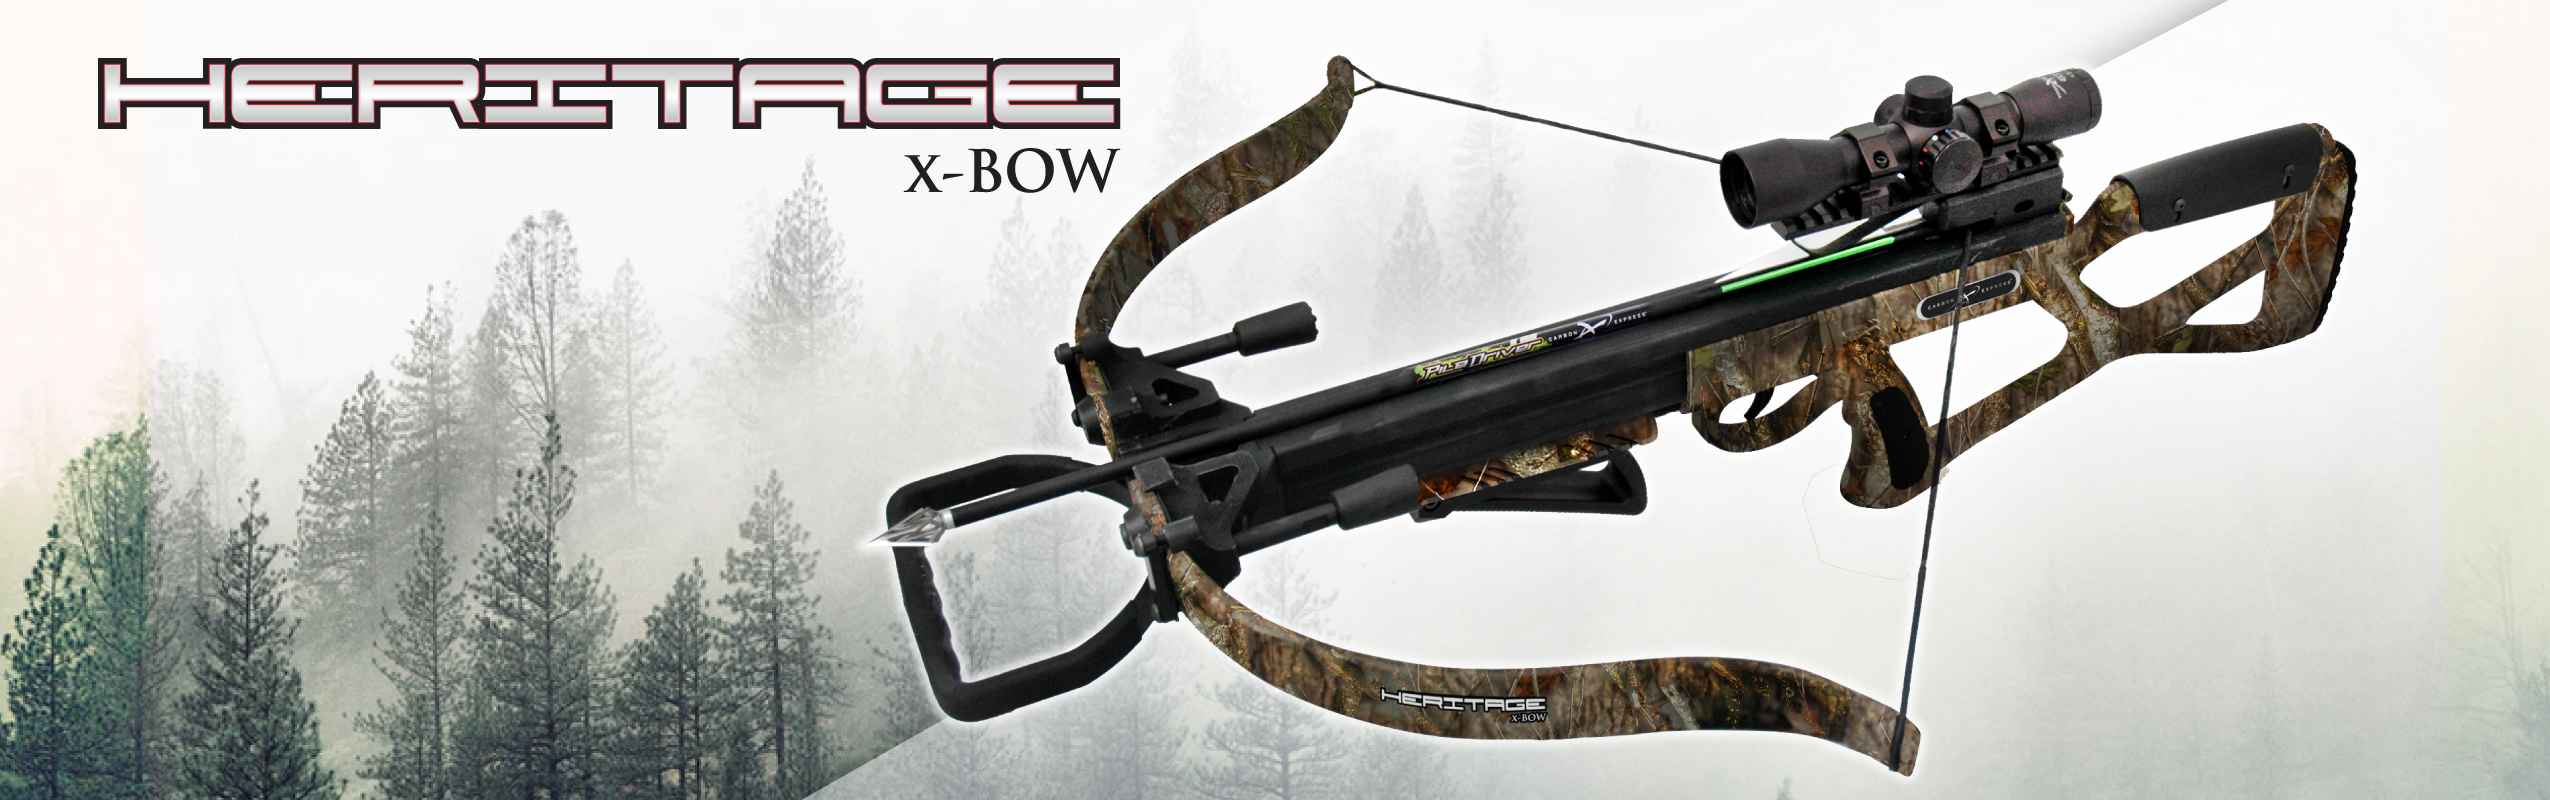 Carbon Express Crosbow Image Q1